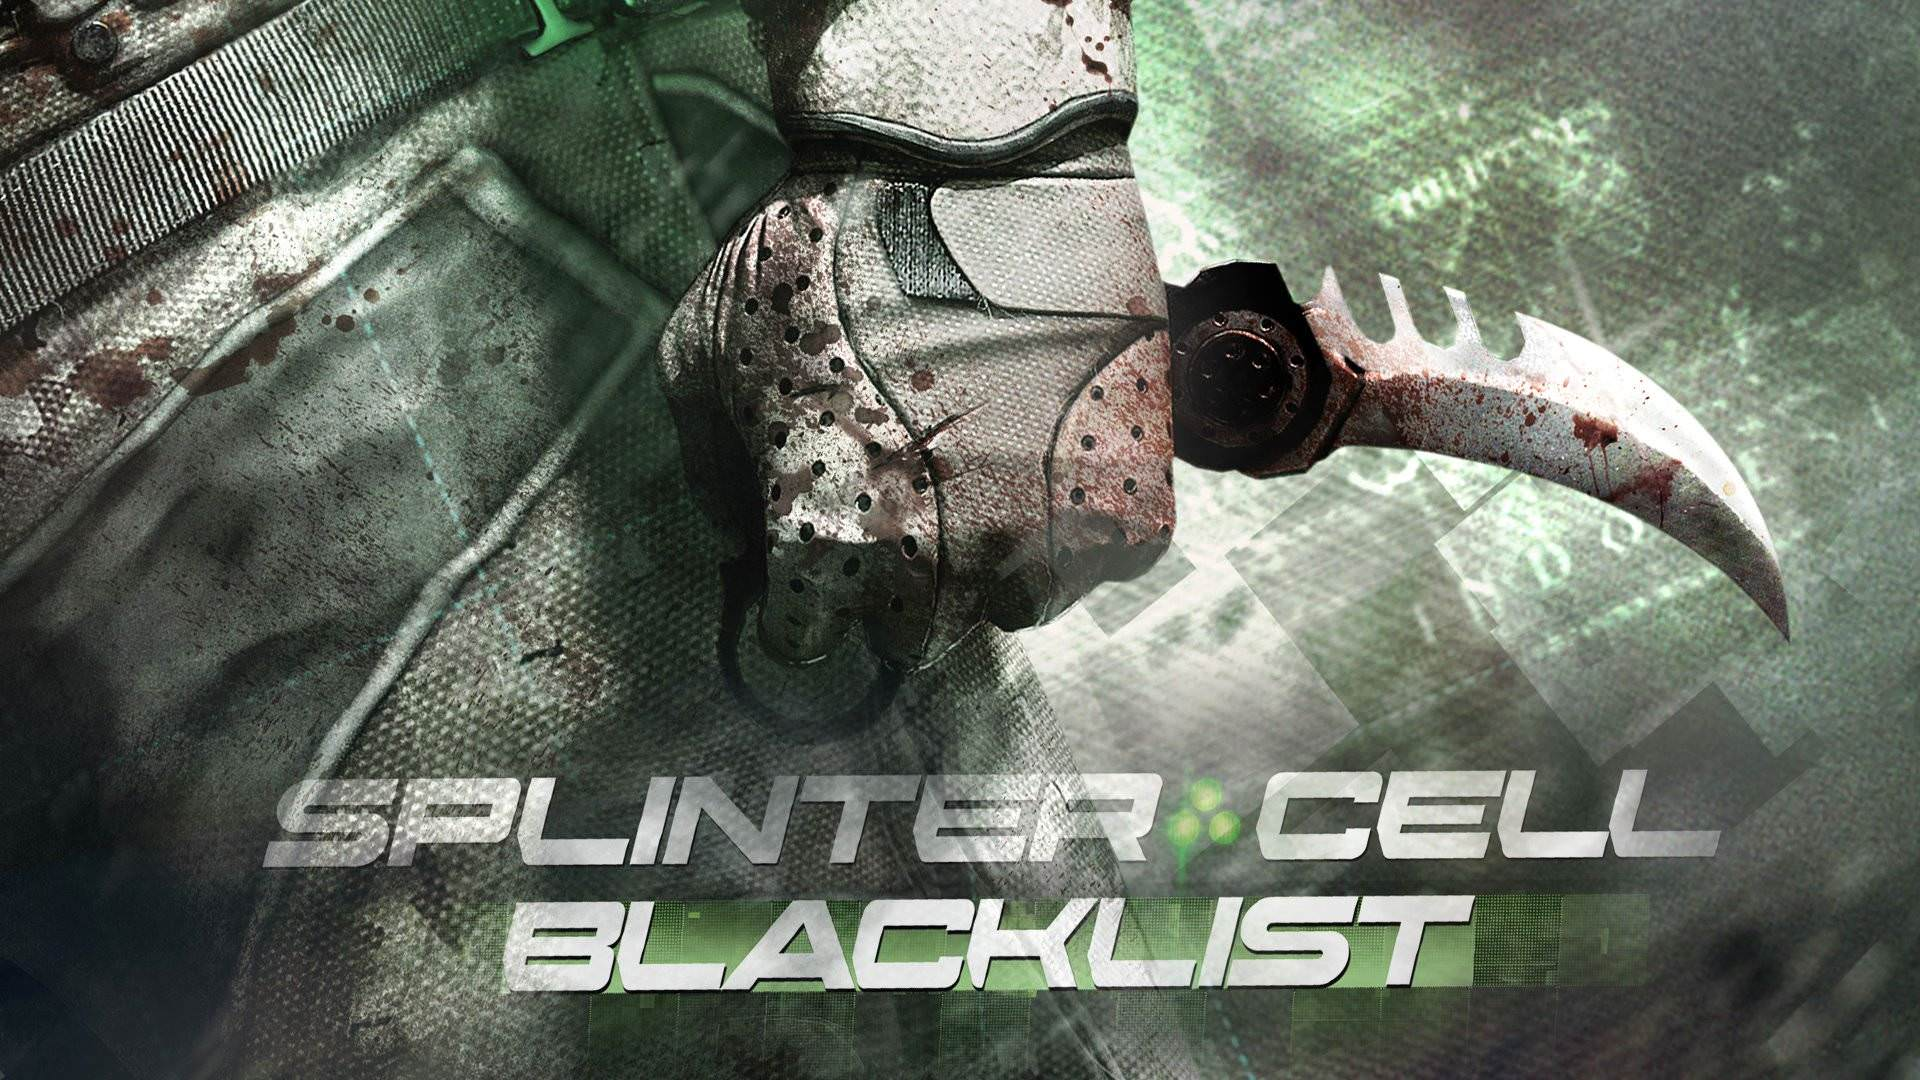 'Splinter Cell: Blacklist' también ha sido parcheado en Wii U